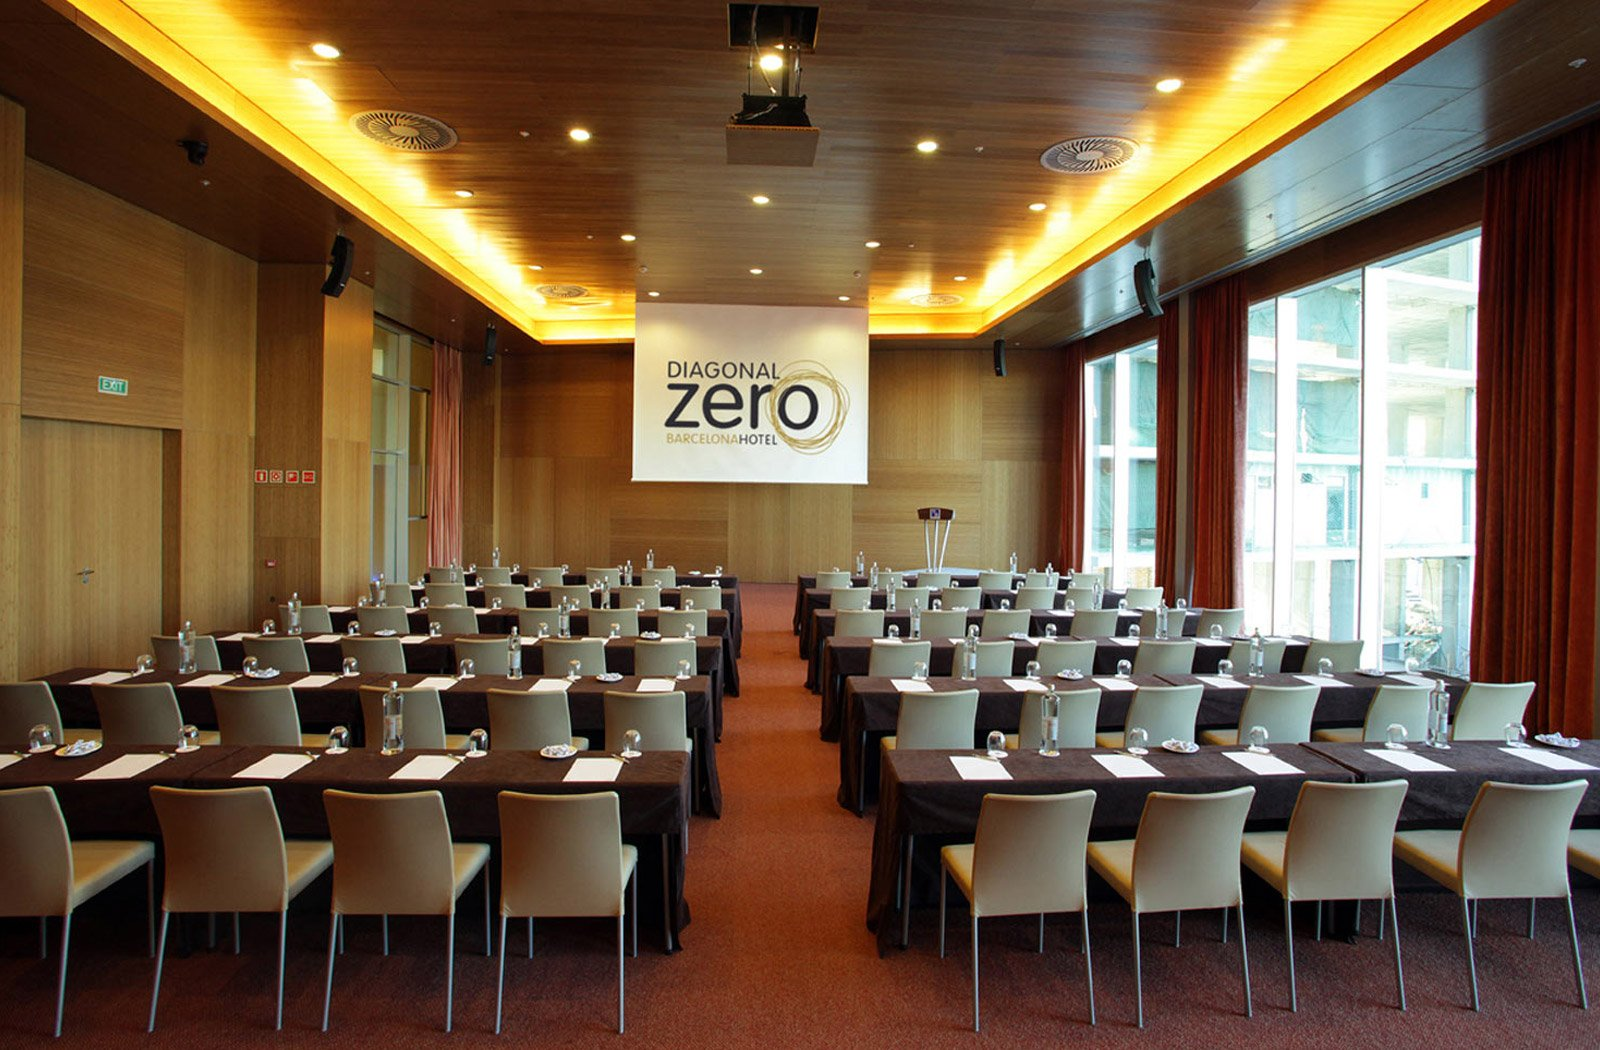 Hotel SB Diagonal Zero | Meeting and events